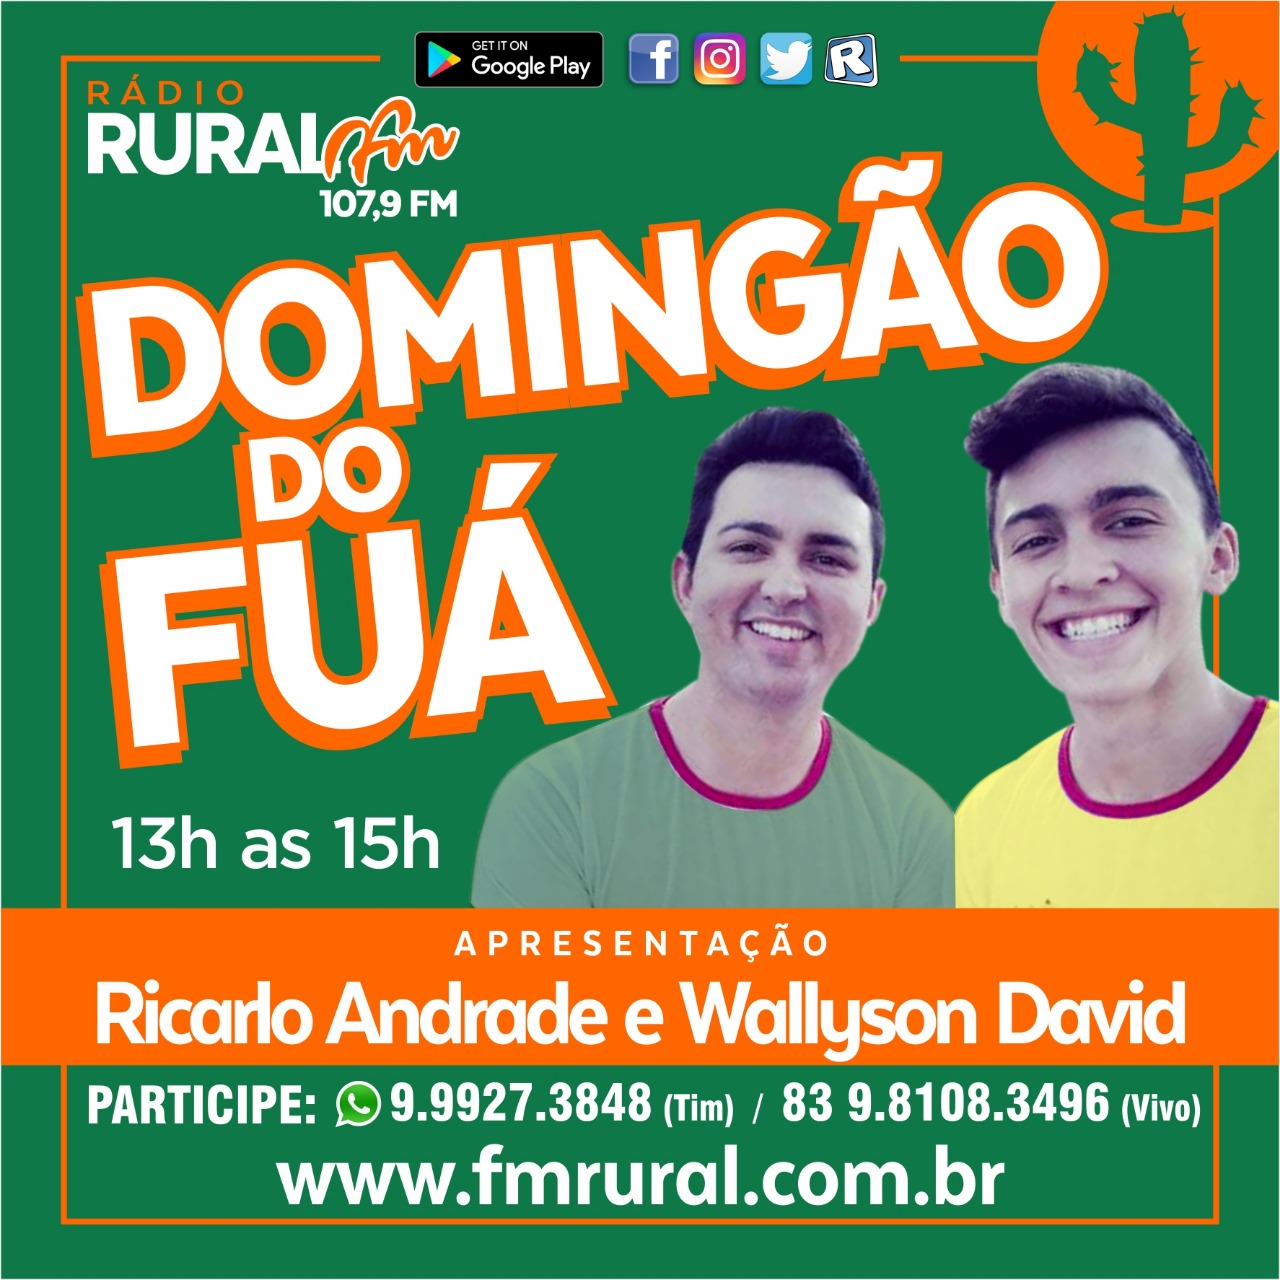 Domingão do Fuá